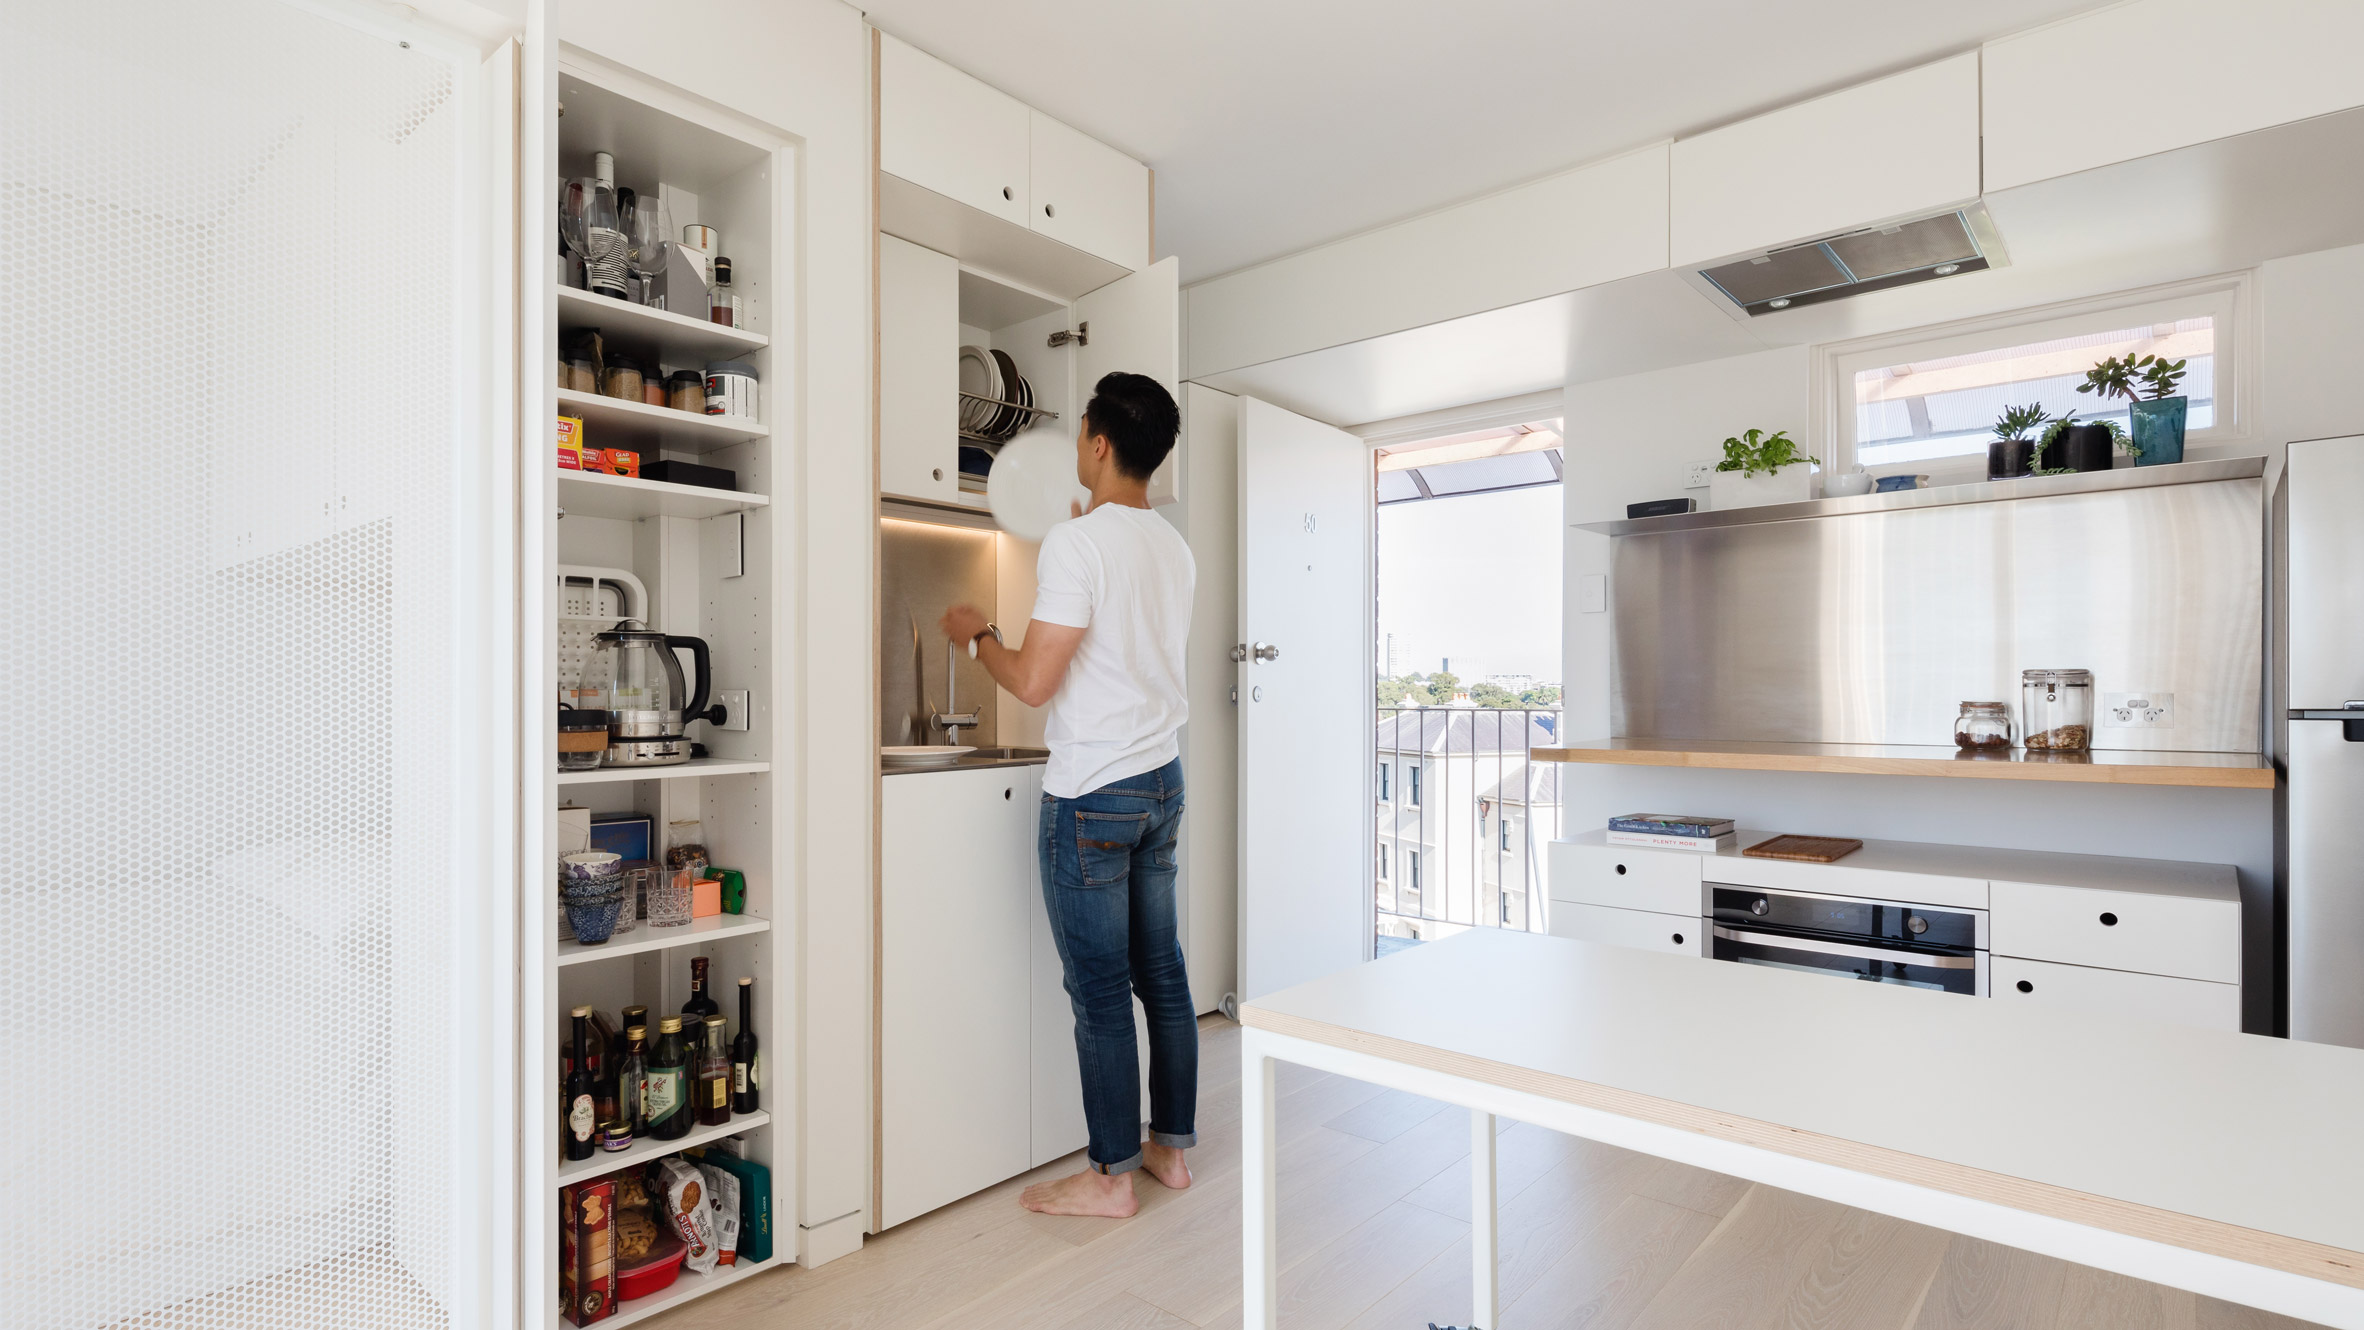 Interior Apartment micro apartment architecture, interiors and design | dezeen